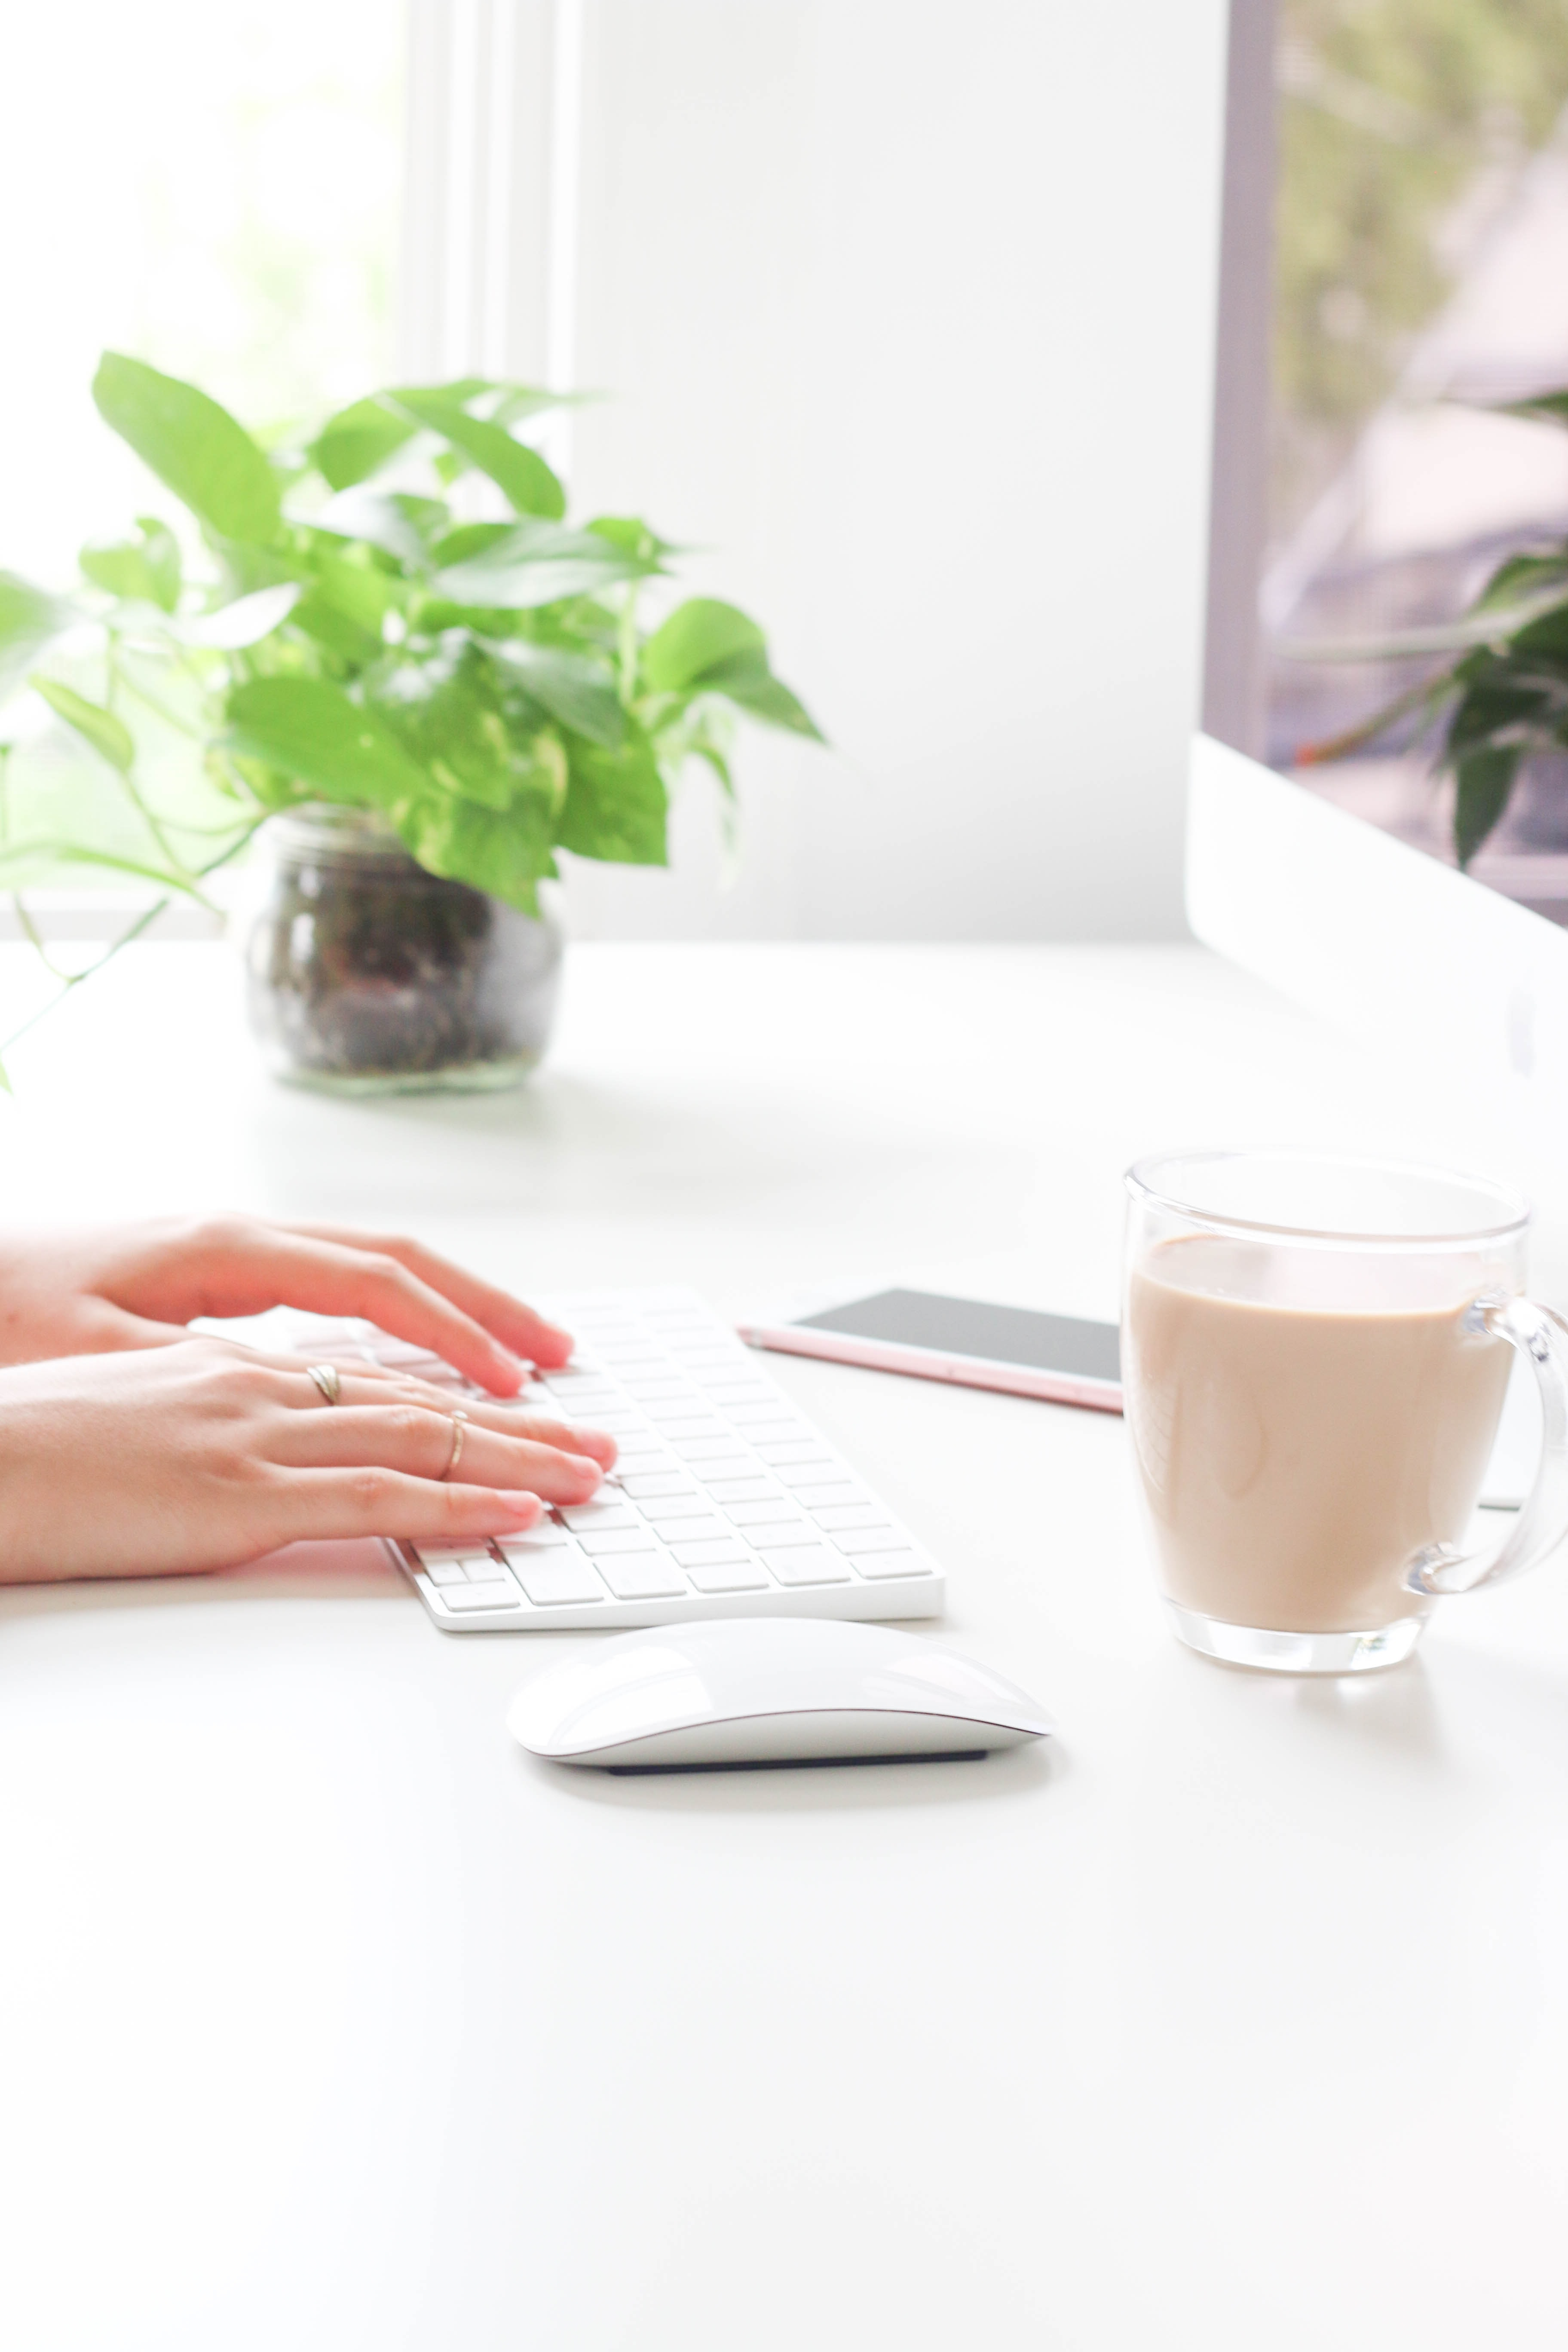 A person's hands on a laptop keyboard on a white desk with a glass of coffee